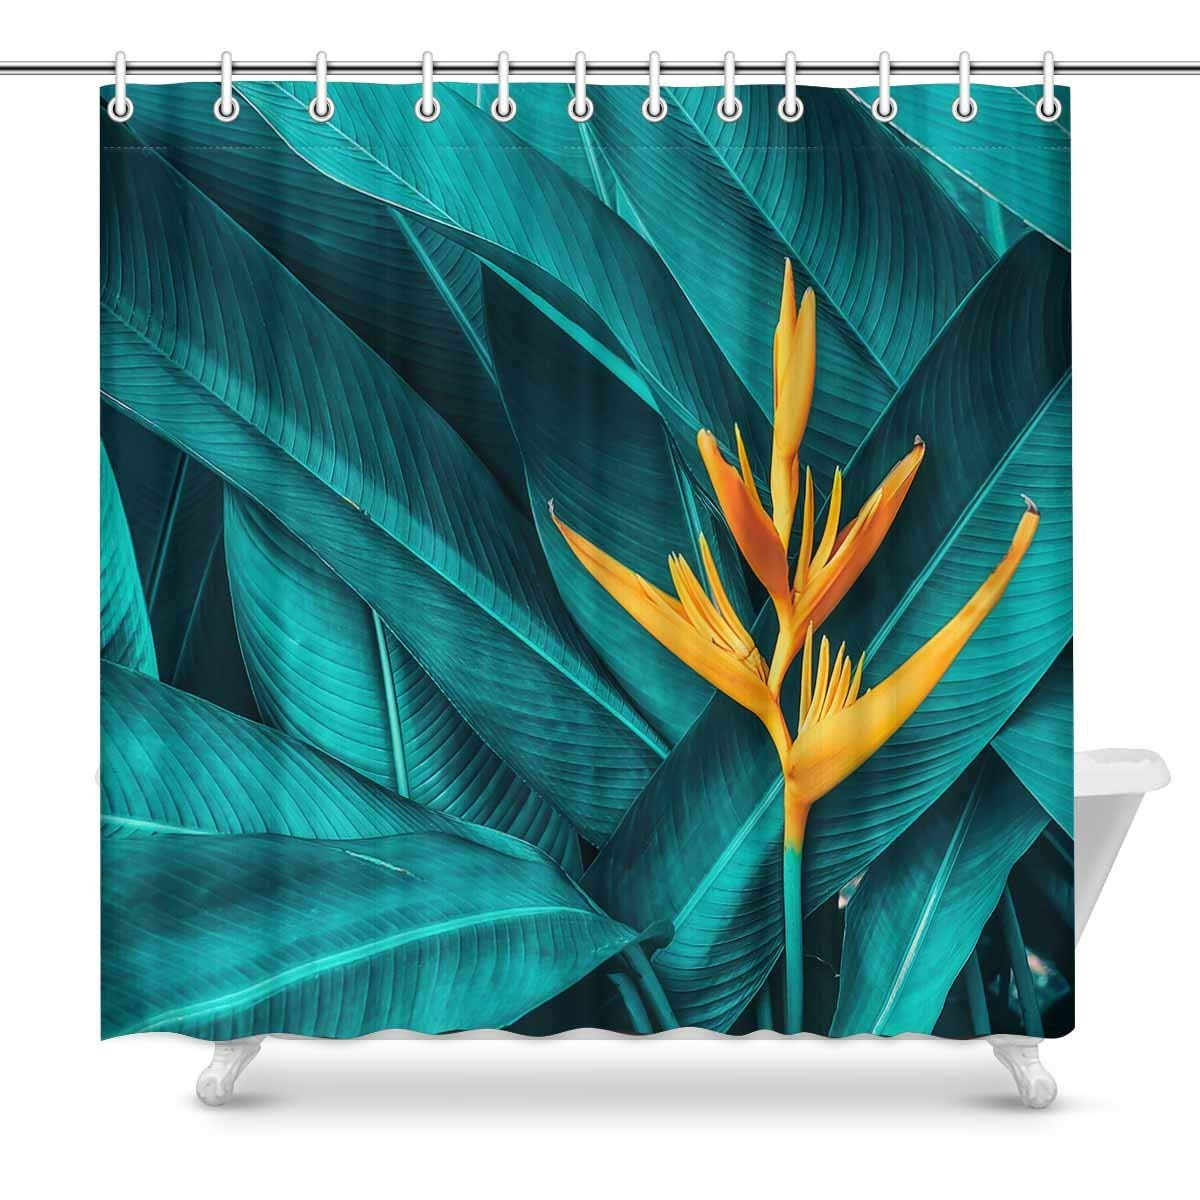 Gckg Colorful Flower Shower Curtain Tropical Foliage Polyester Fabric Shower Curtain Bathroom Sets 66x72 Inches